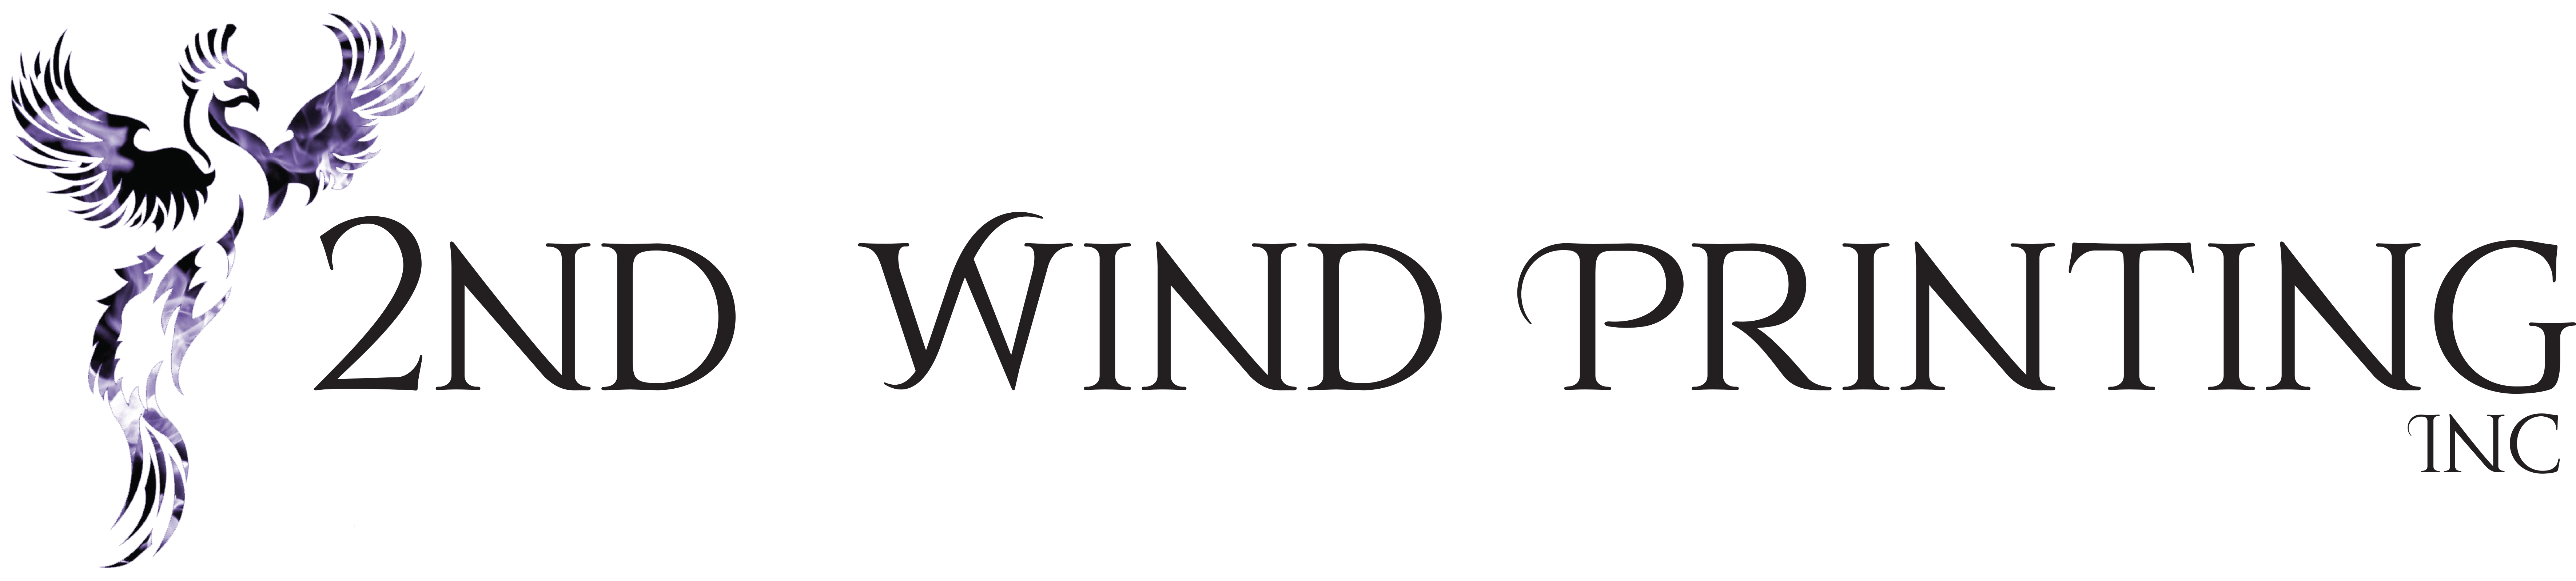 2nd Wind Printing, Inc